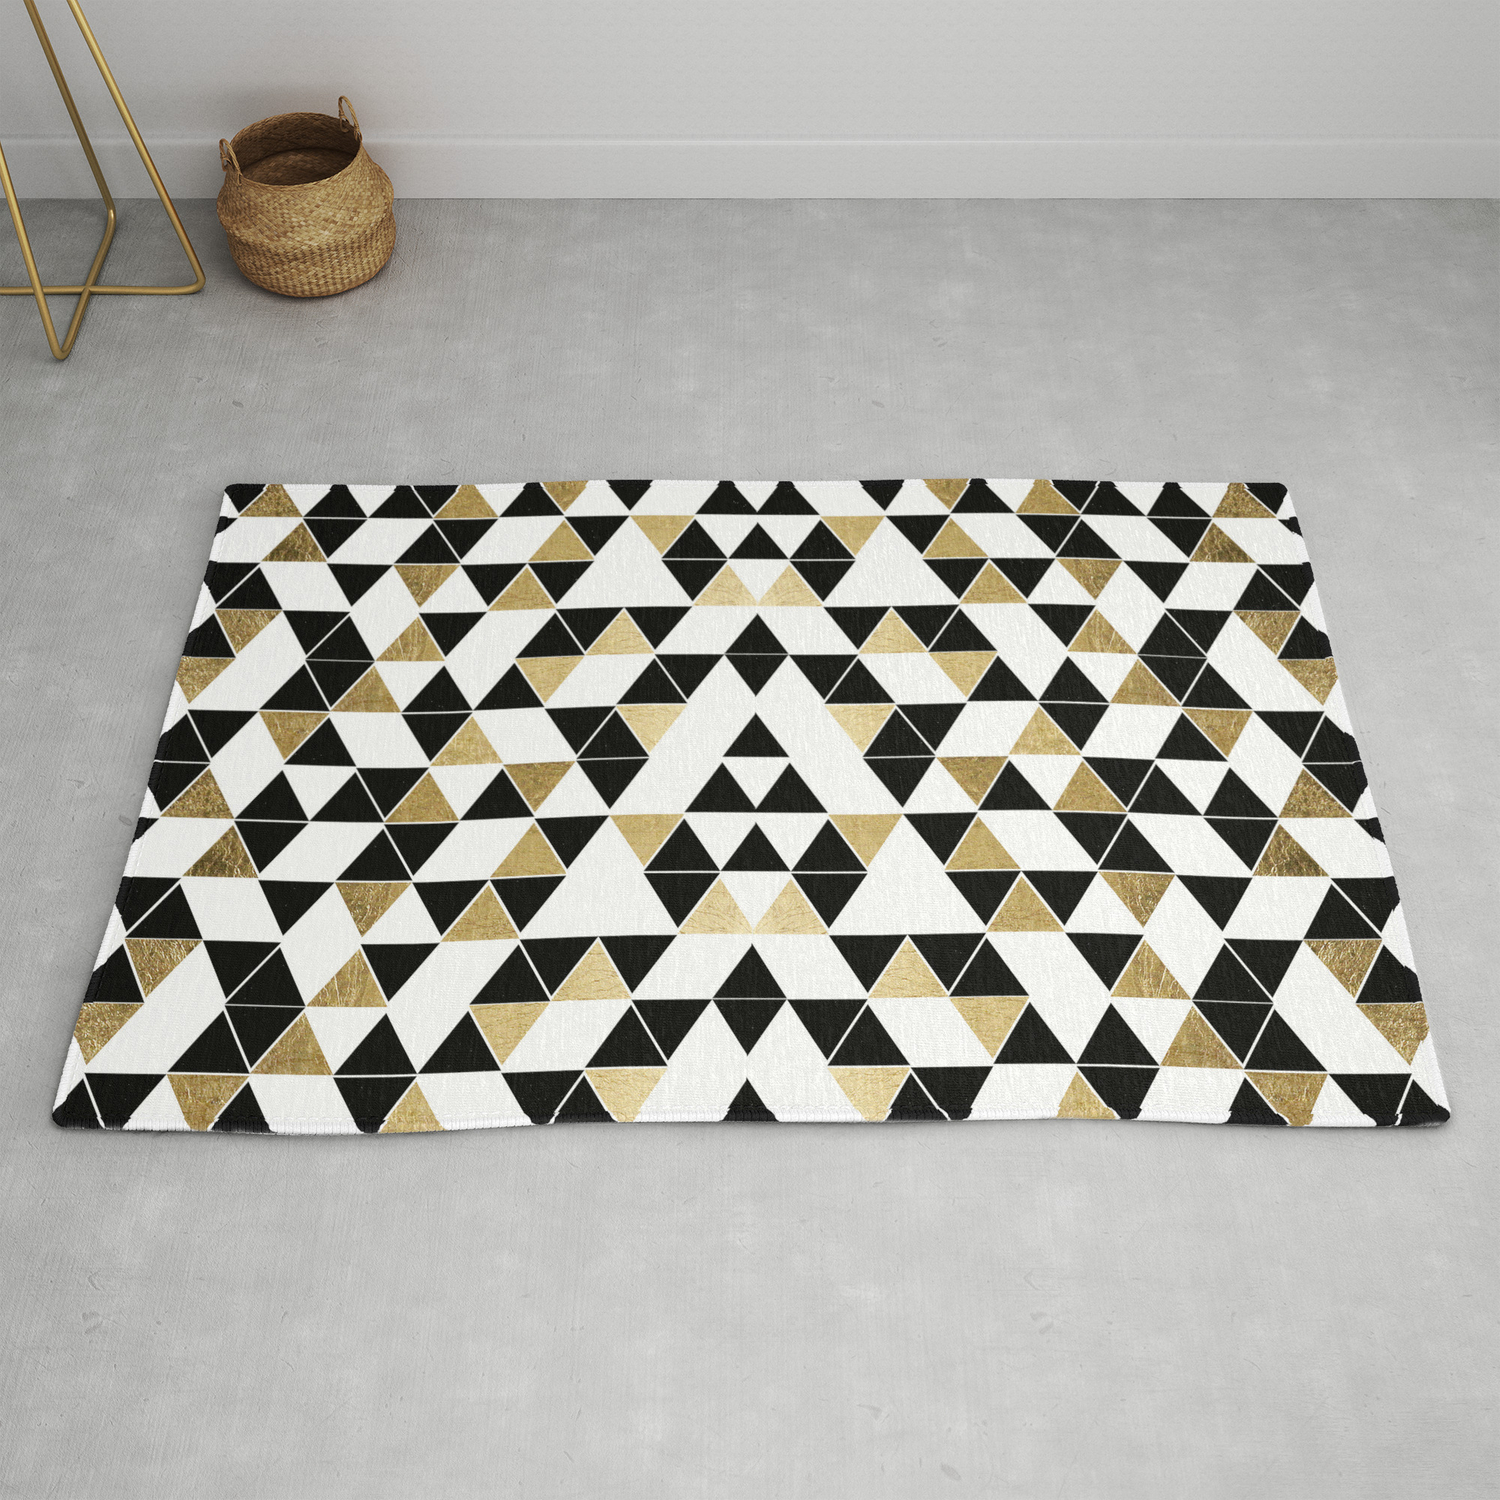 Image of: Modern Black White And Faux Gold Triangles Rug By Blackstrawberry Society6